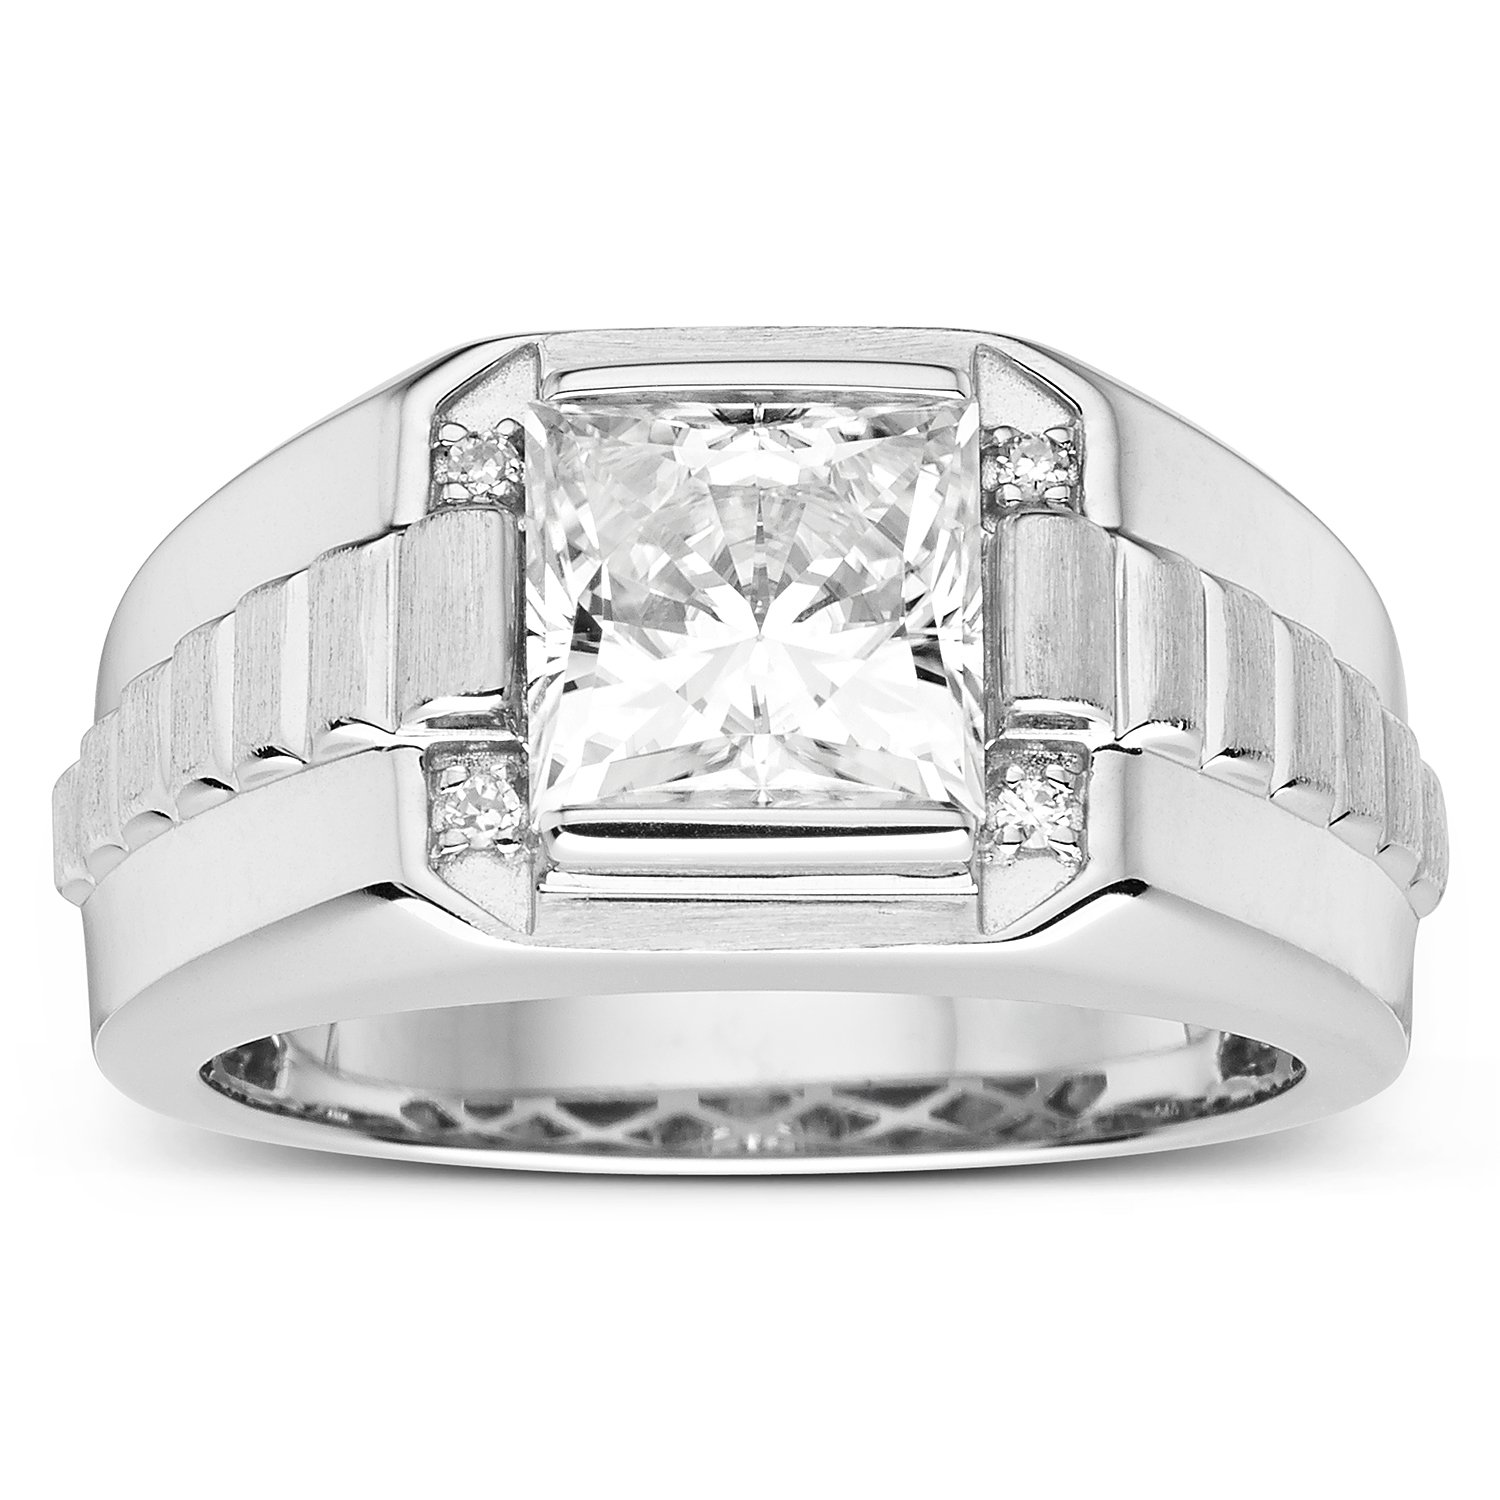 Forever Classic Mens Square 8.0mm Moissanite Wedding Band-size 10, 3.14cttw DEW By Charles & Colvard by Charles & Colvard